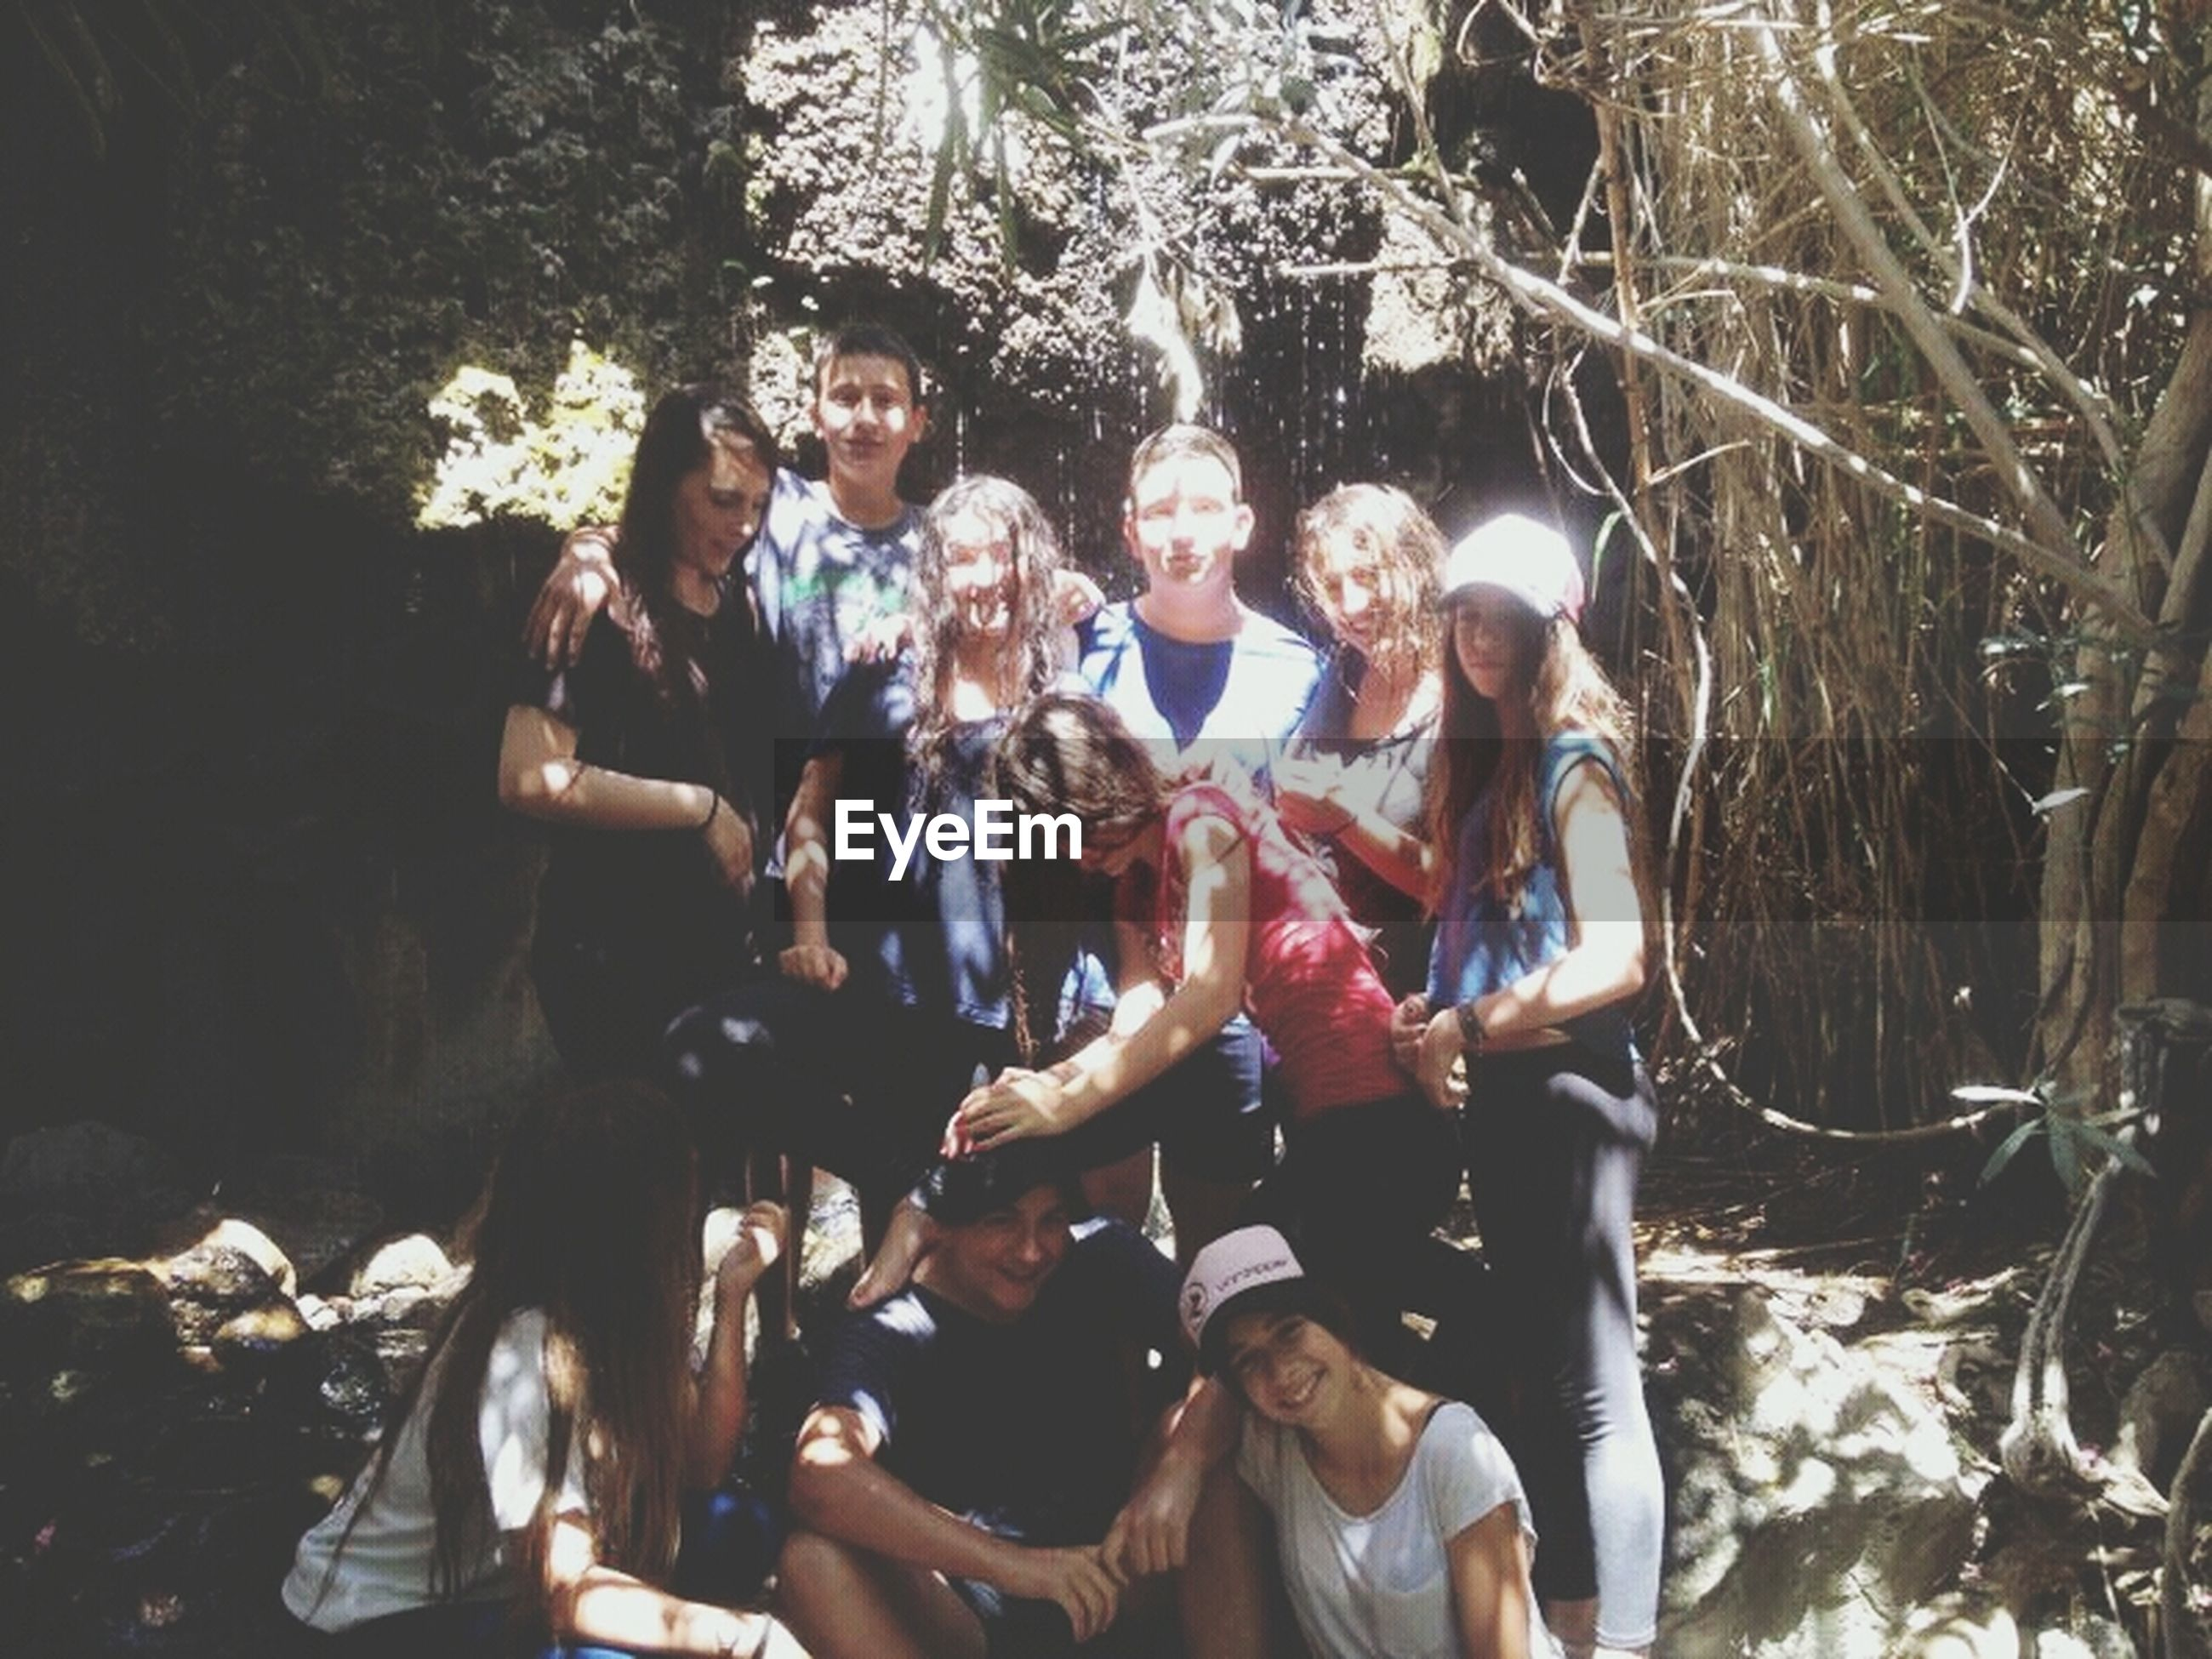 lifestyles, leisure activity, togetherness, tree, men, casual clothing, enjoyment, person, fun, full length, sitting, friendship, outdoors, holding, celebration, happiness, day